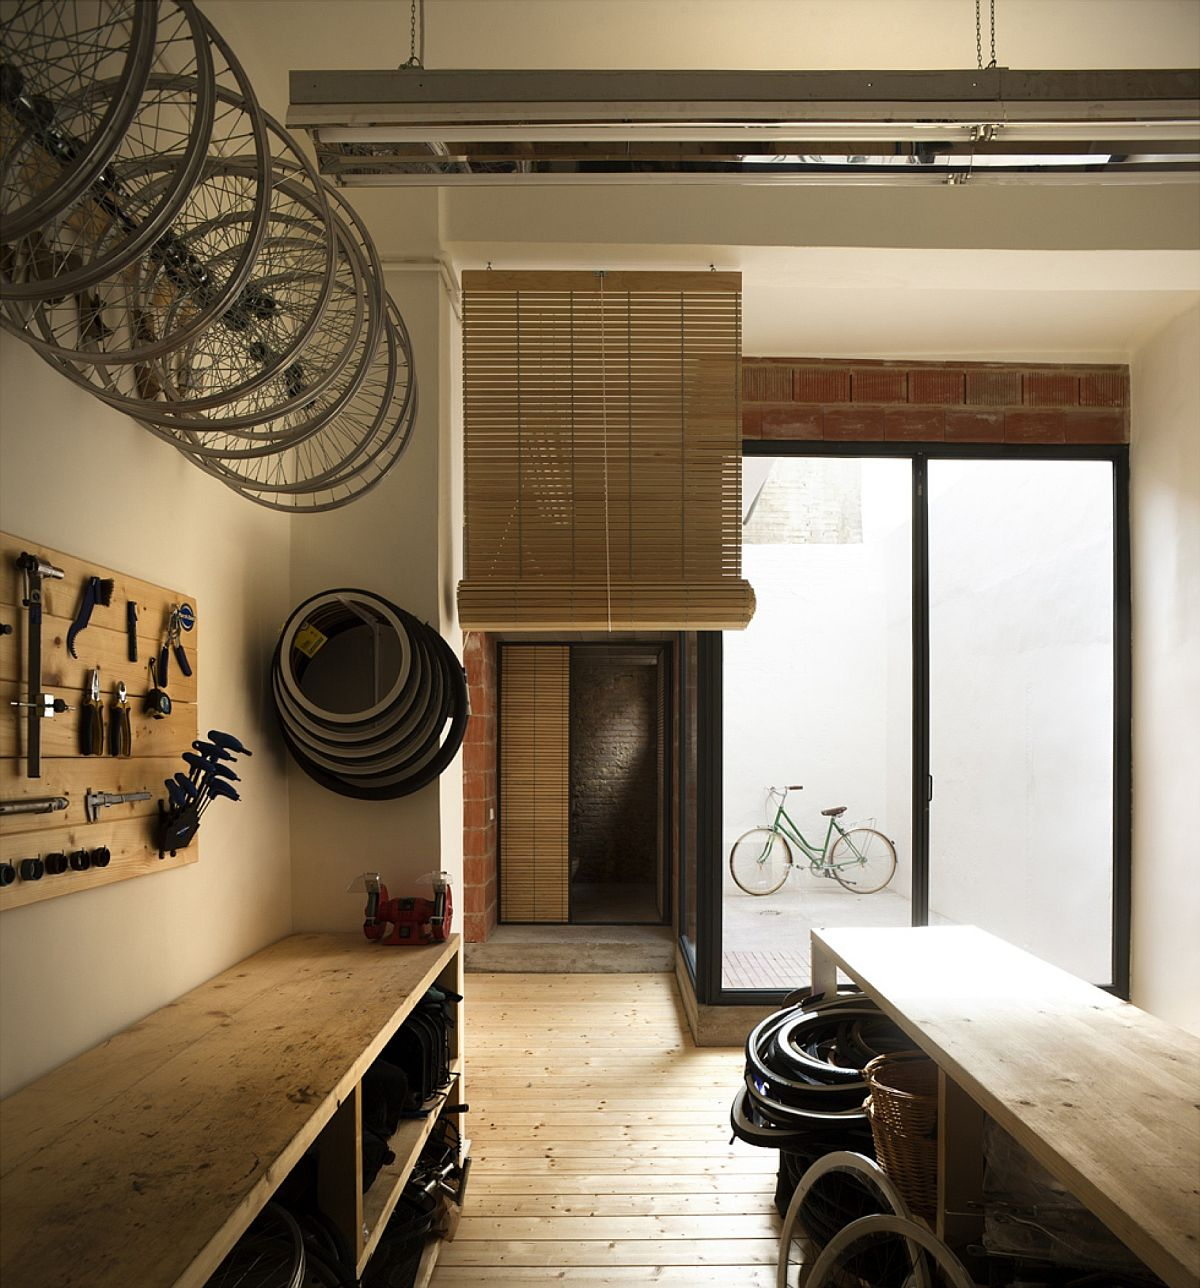 Natural lighting adds to the ambaince of the remodeled cycle shop